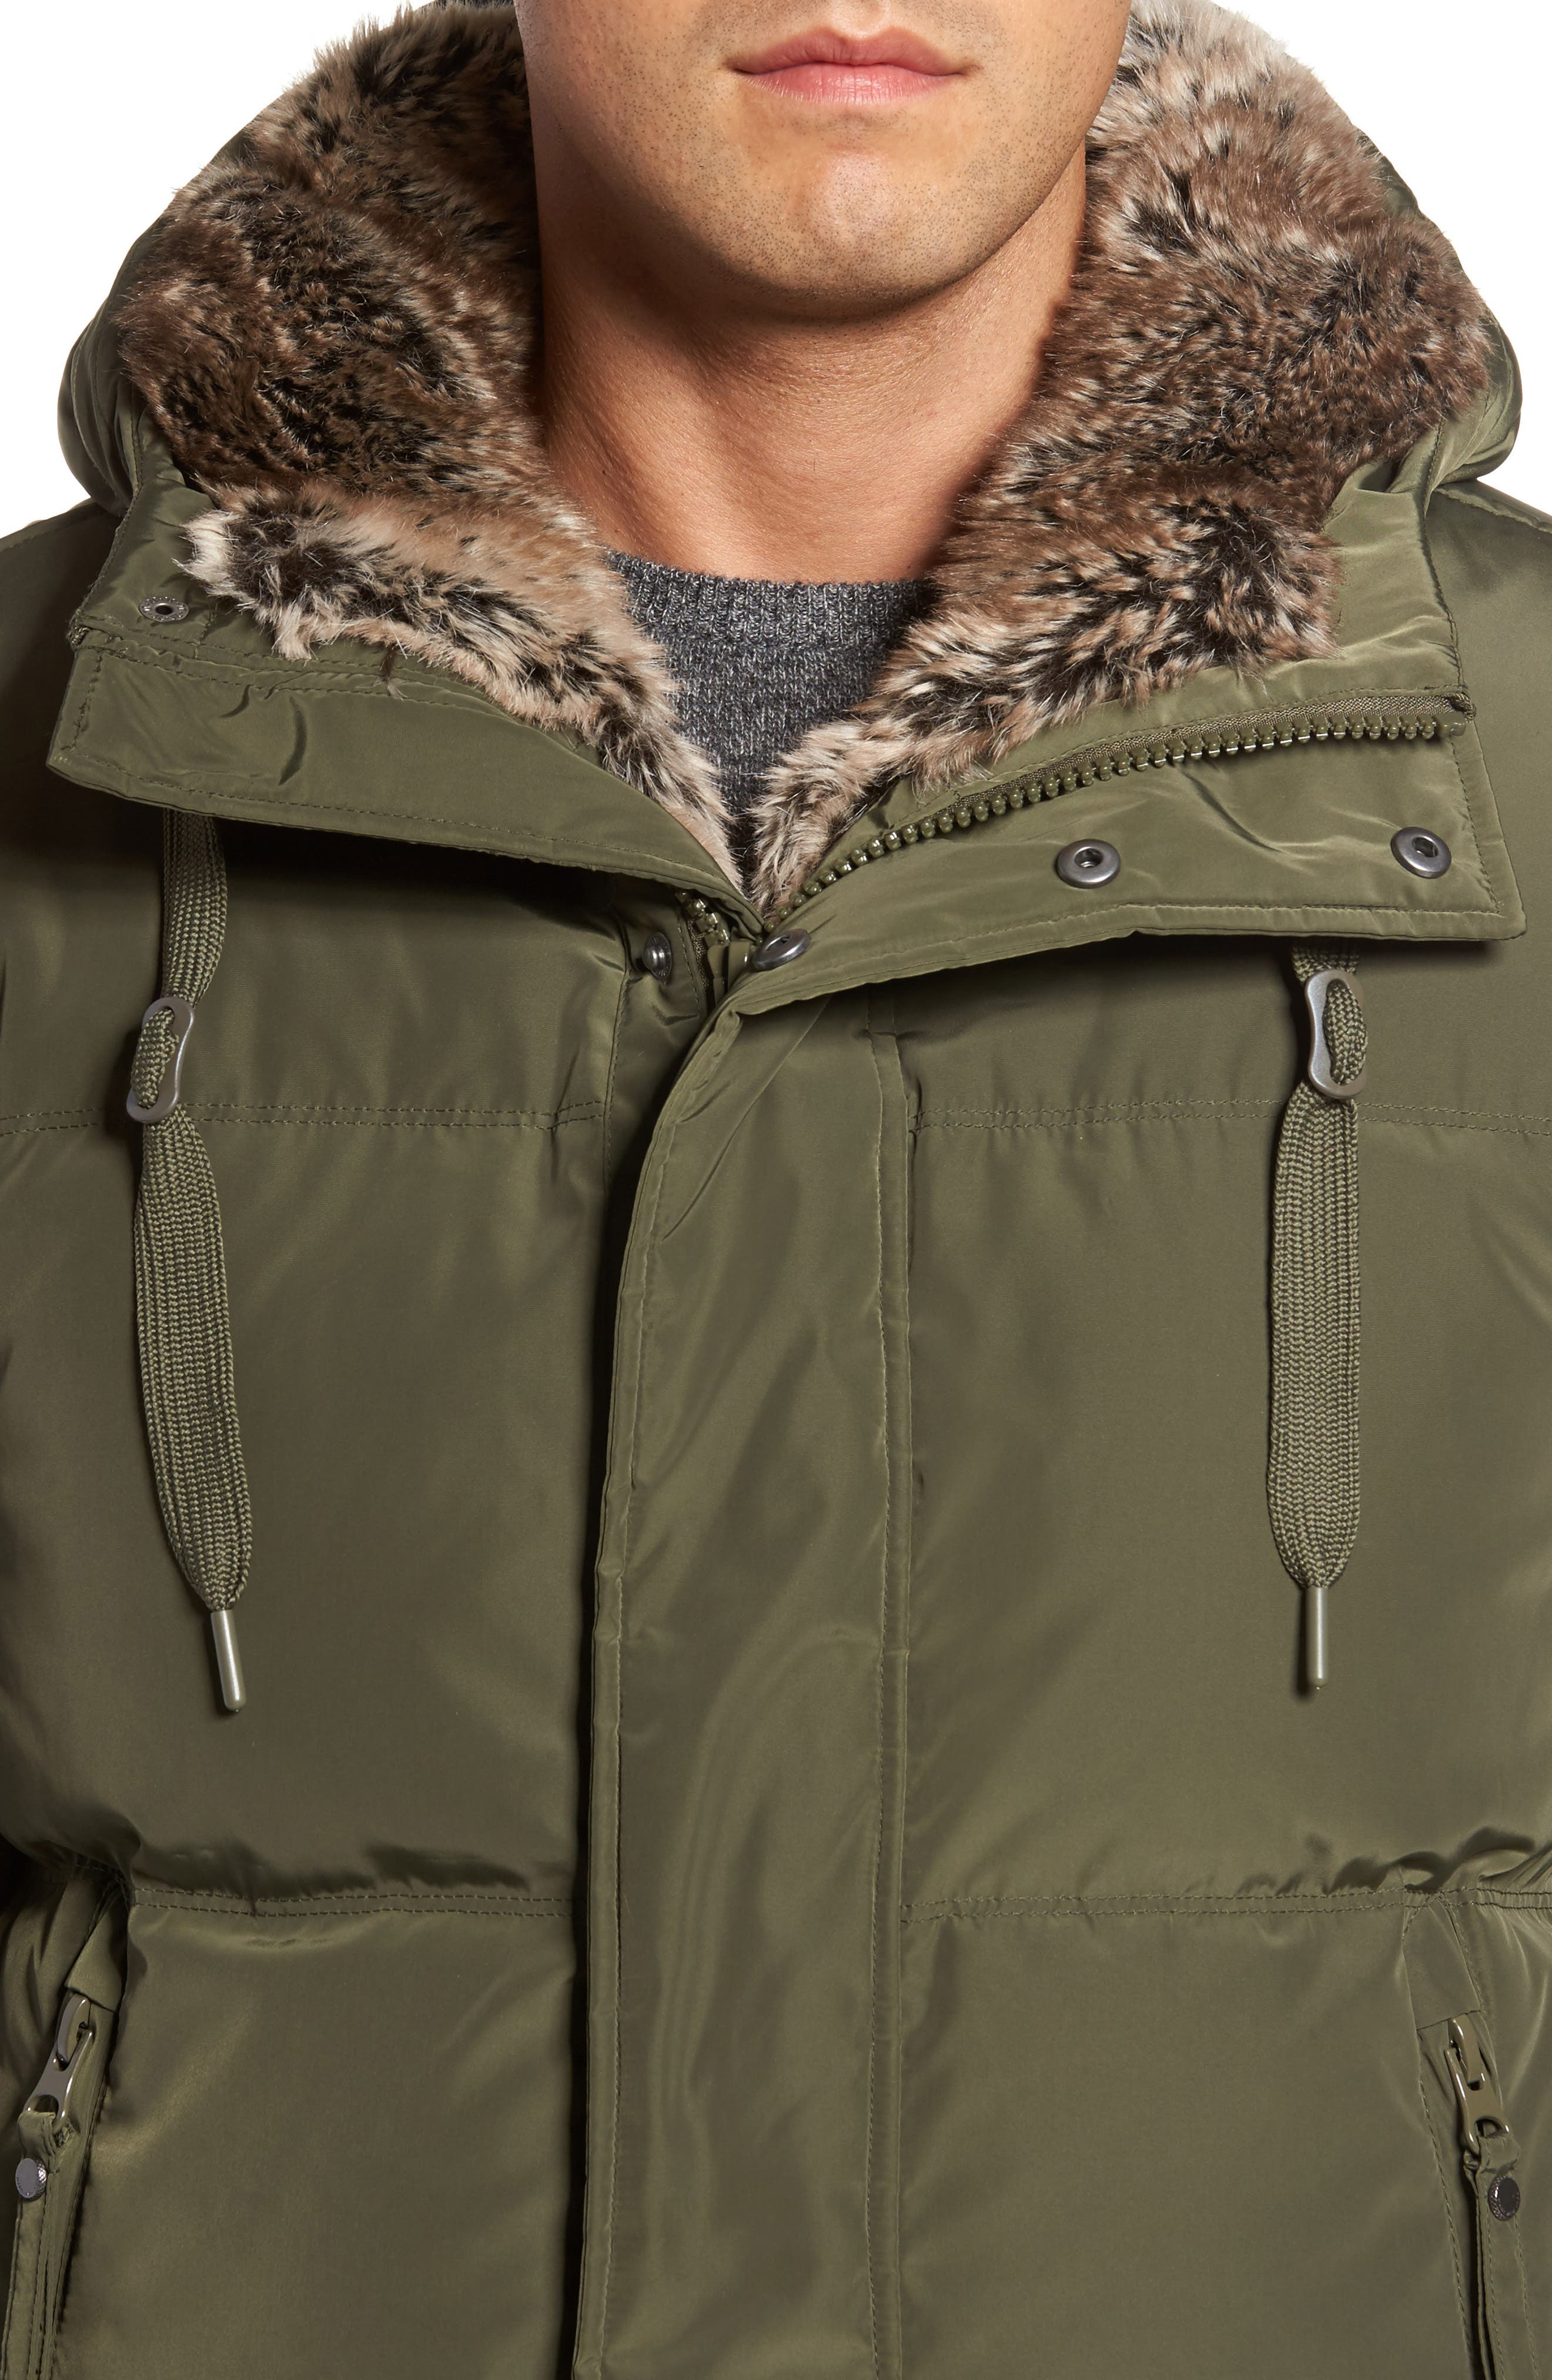 Athlone Faux Fur Down Jacket,                             Alternate thumbnail 4, color,                             Moss